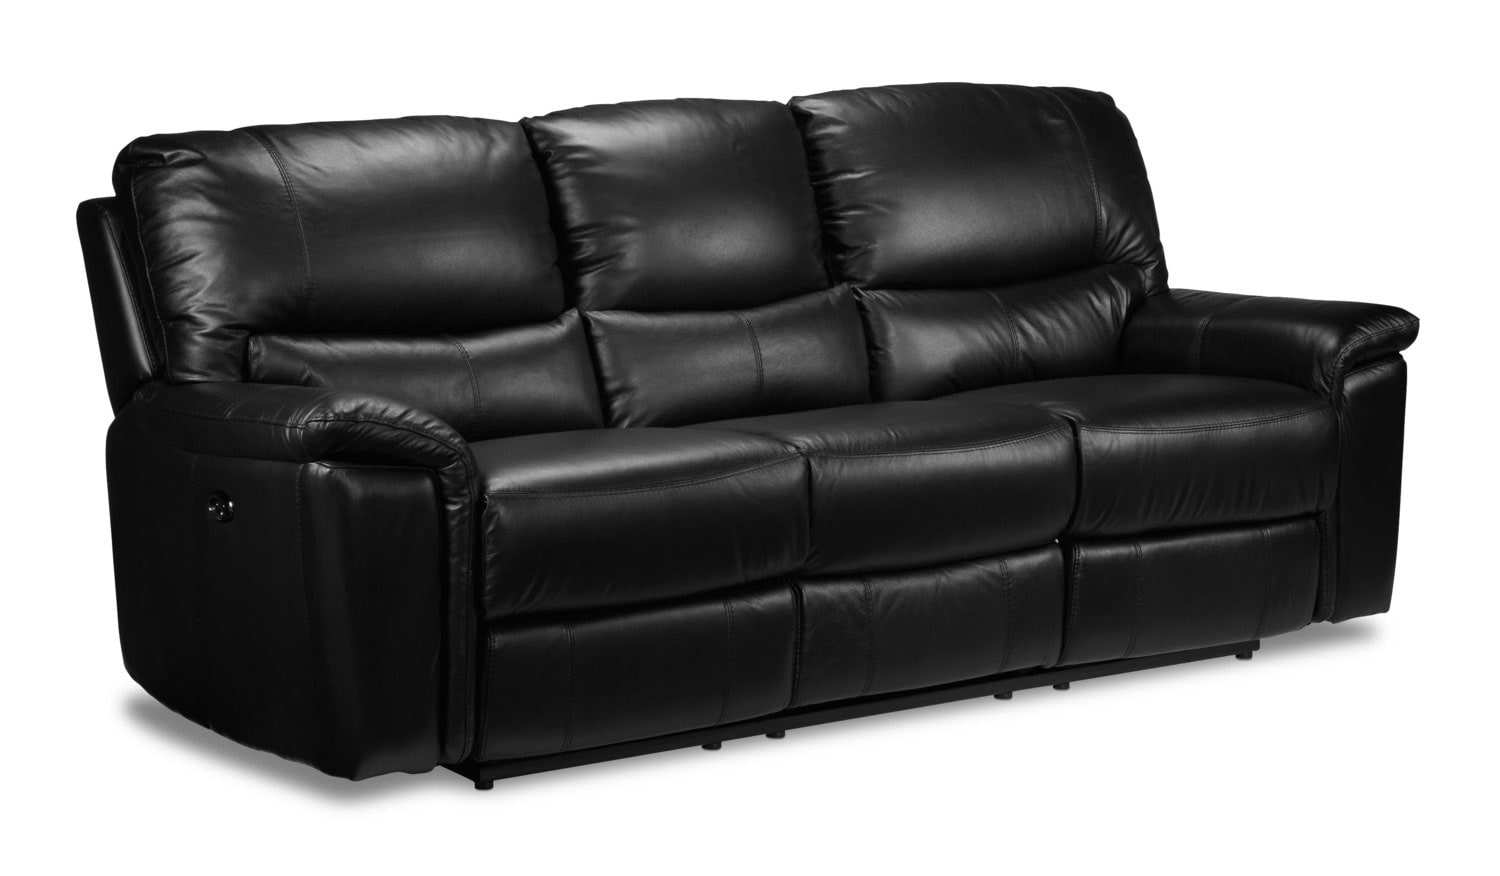 Nolan power reclining loveseat black leon 39 s Power loveseat recliner